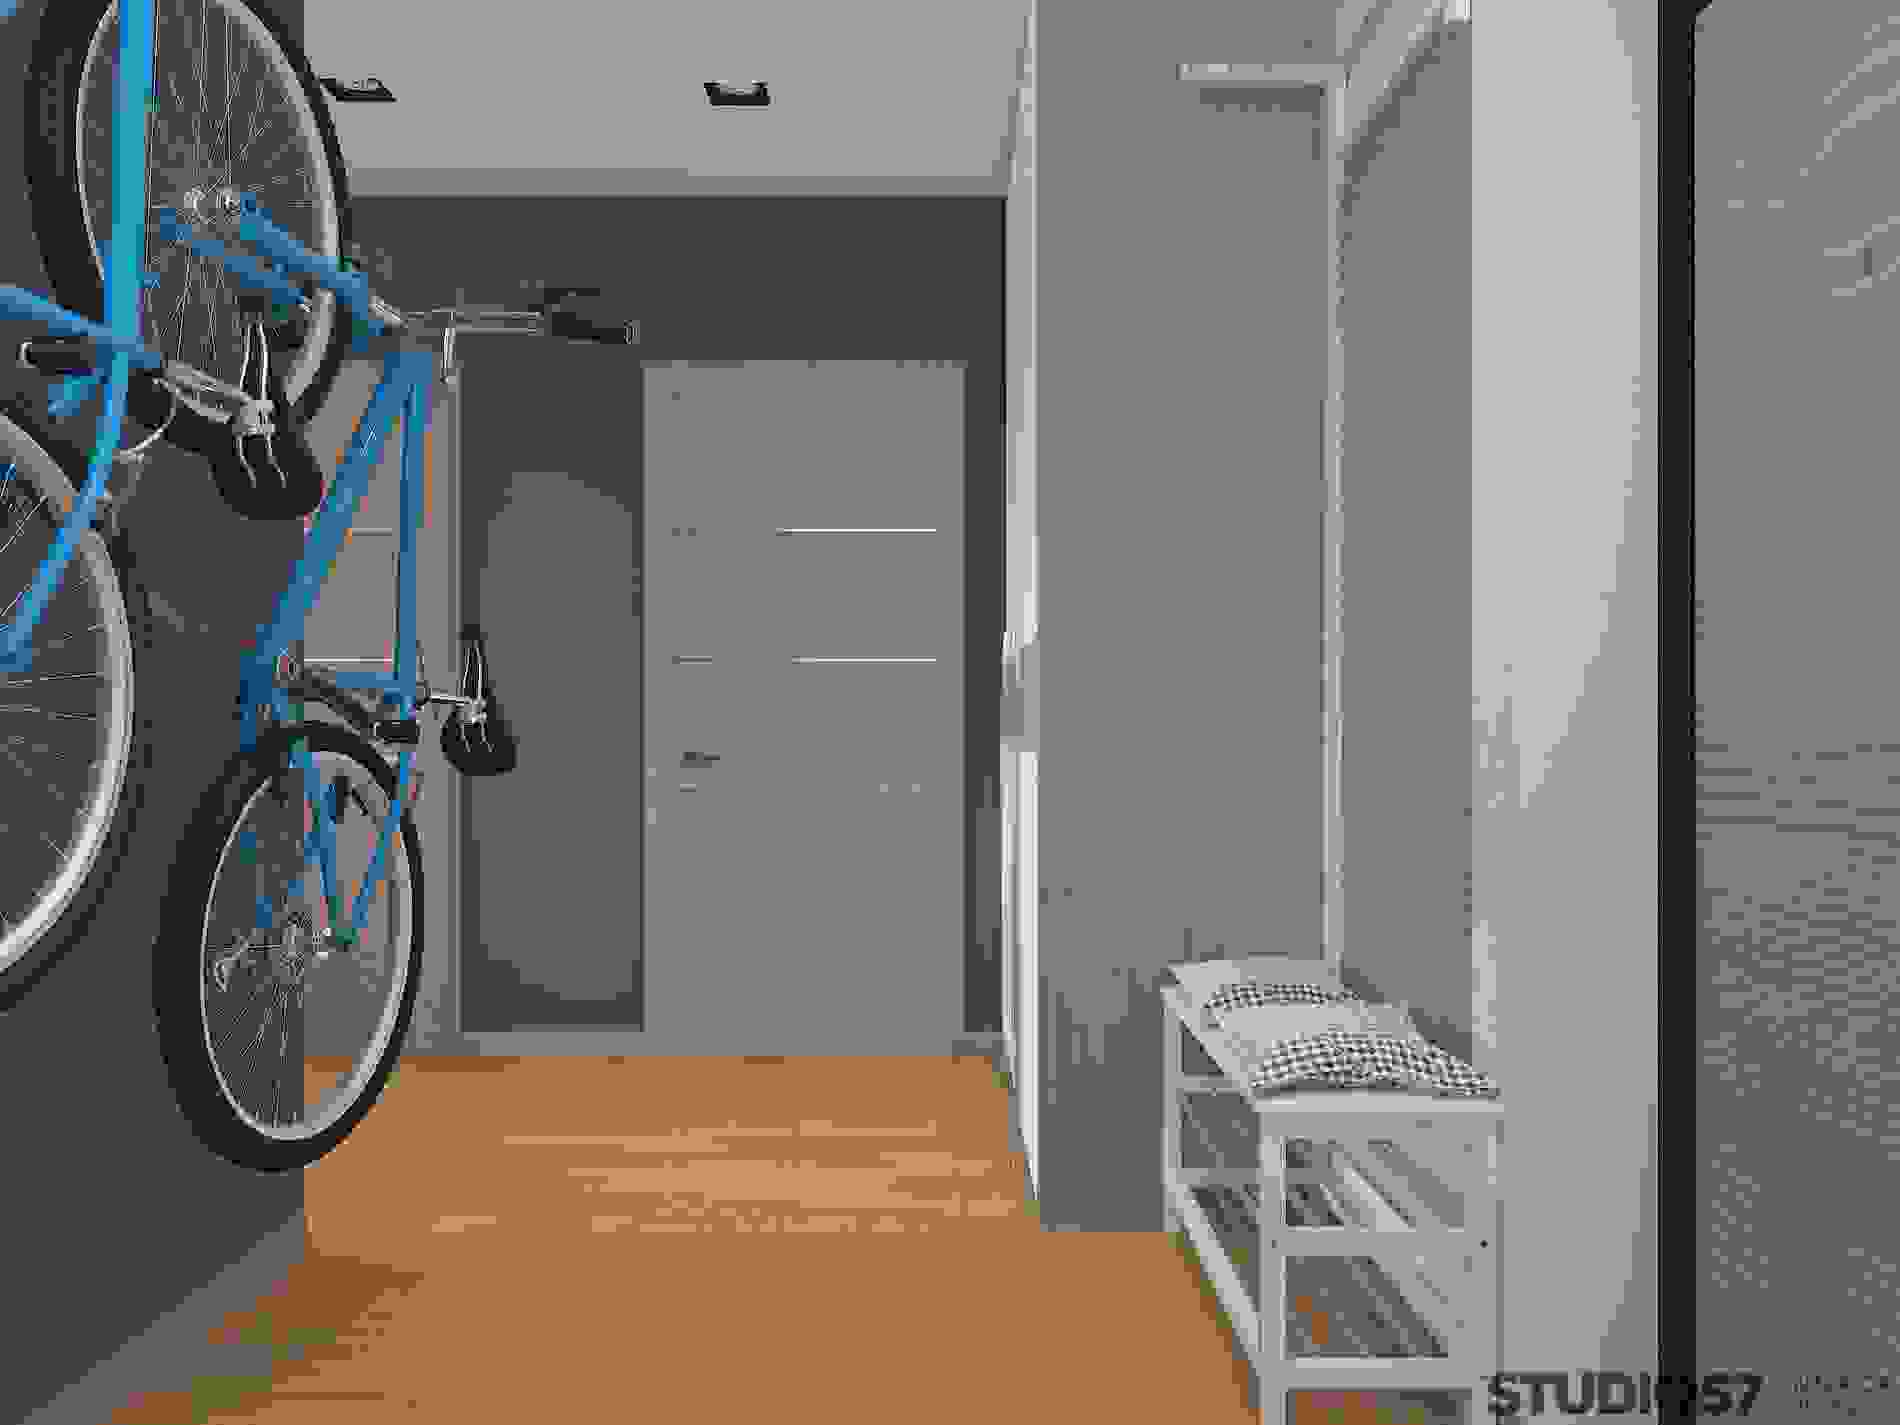 How to place a bike in the hallway